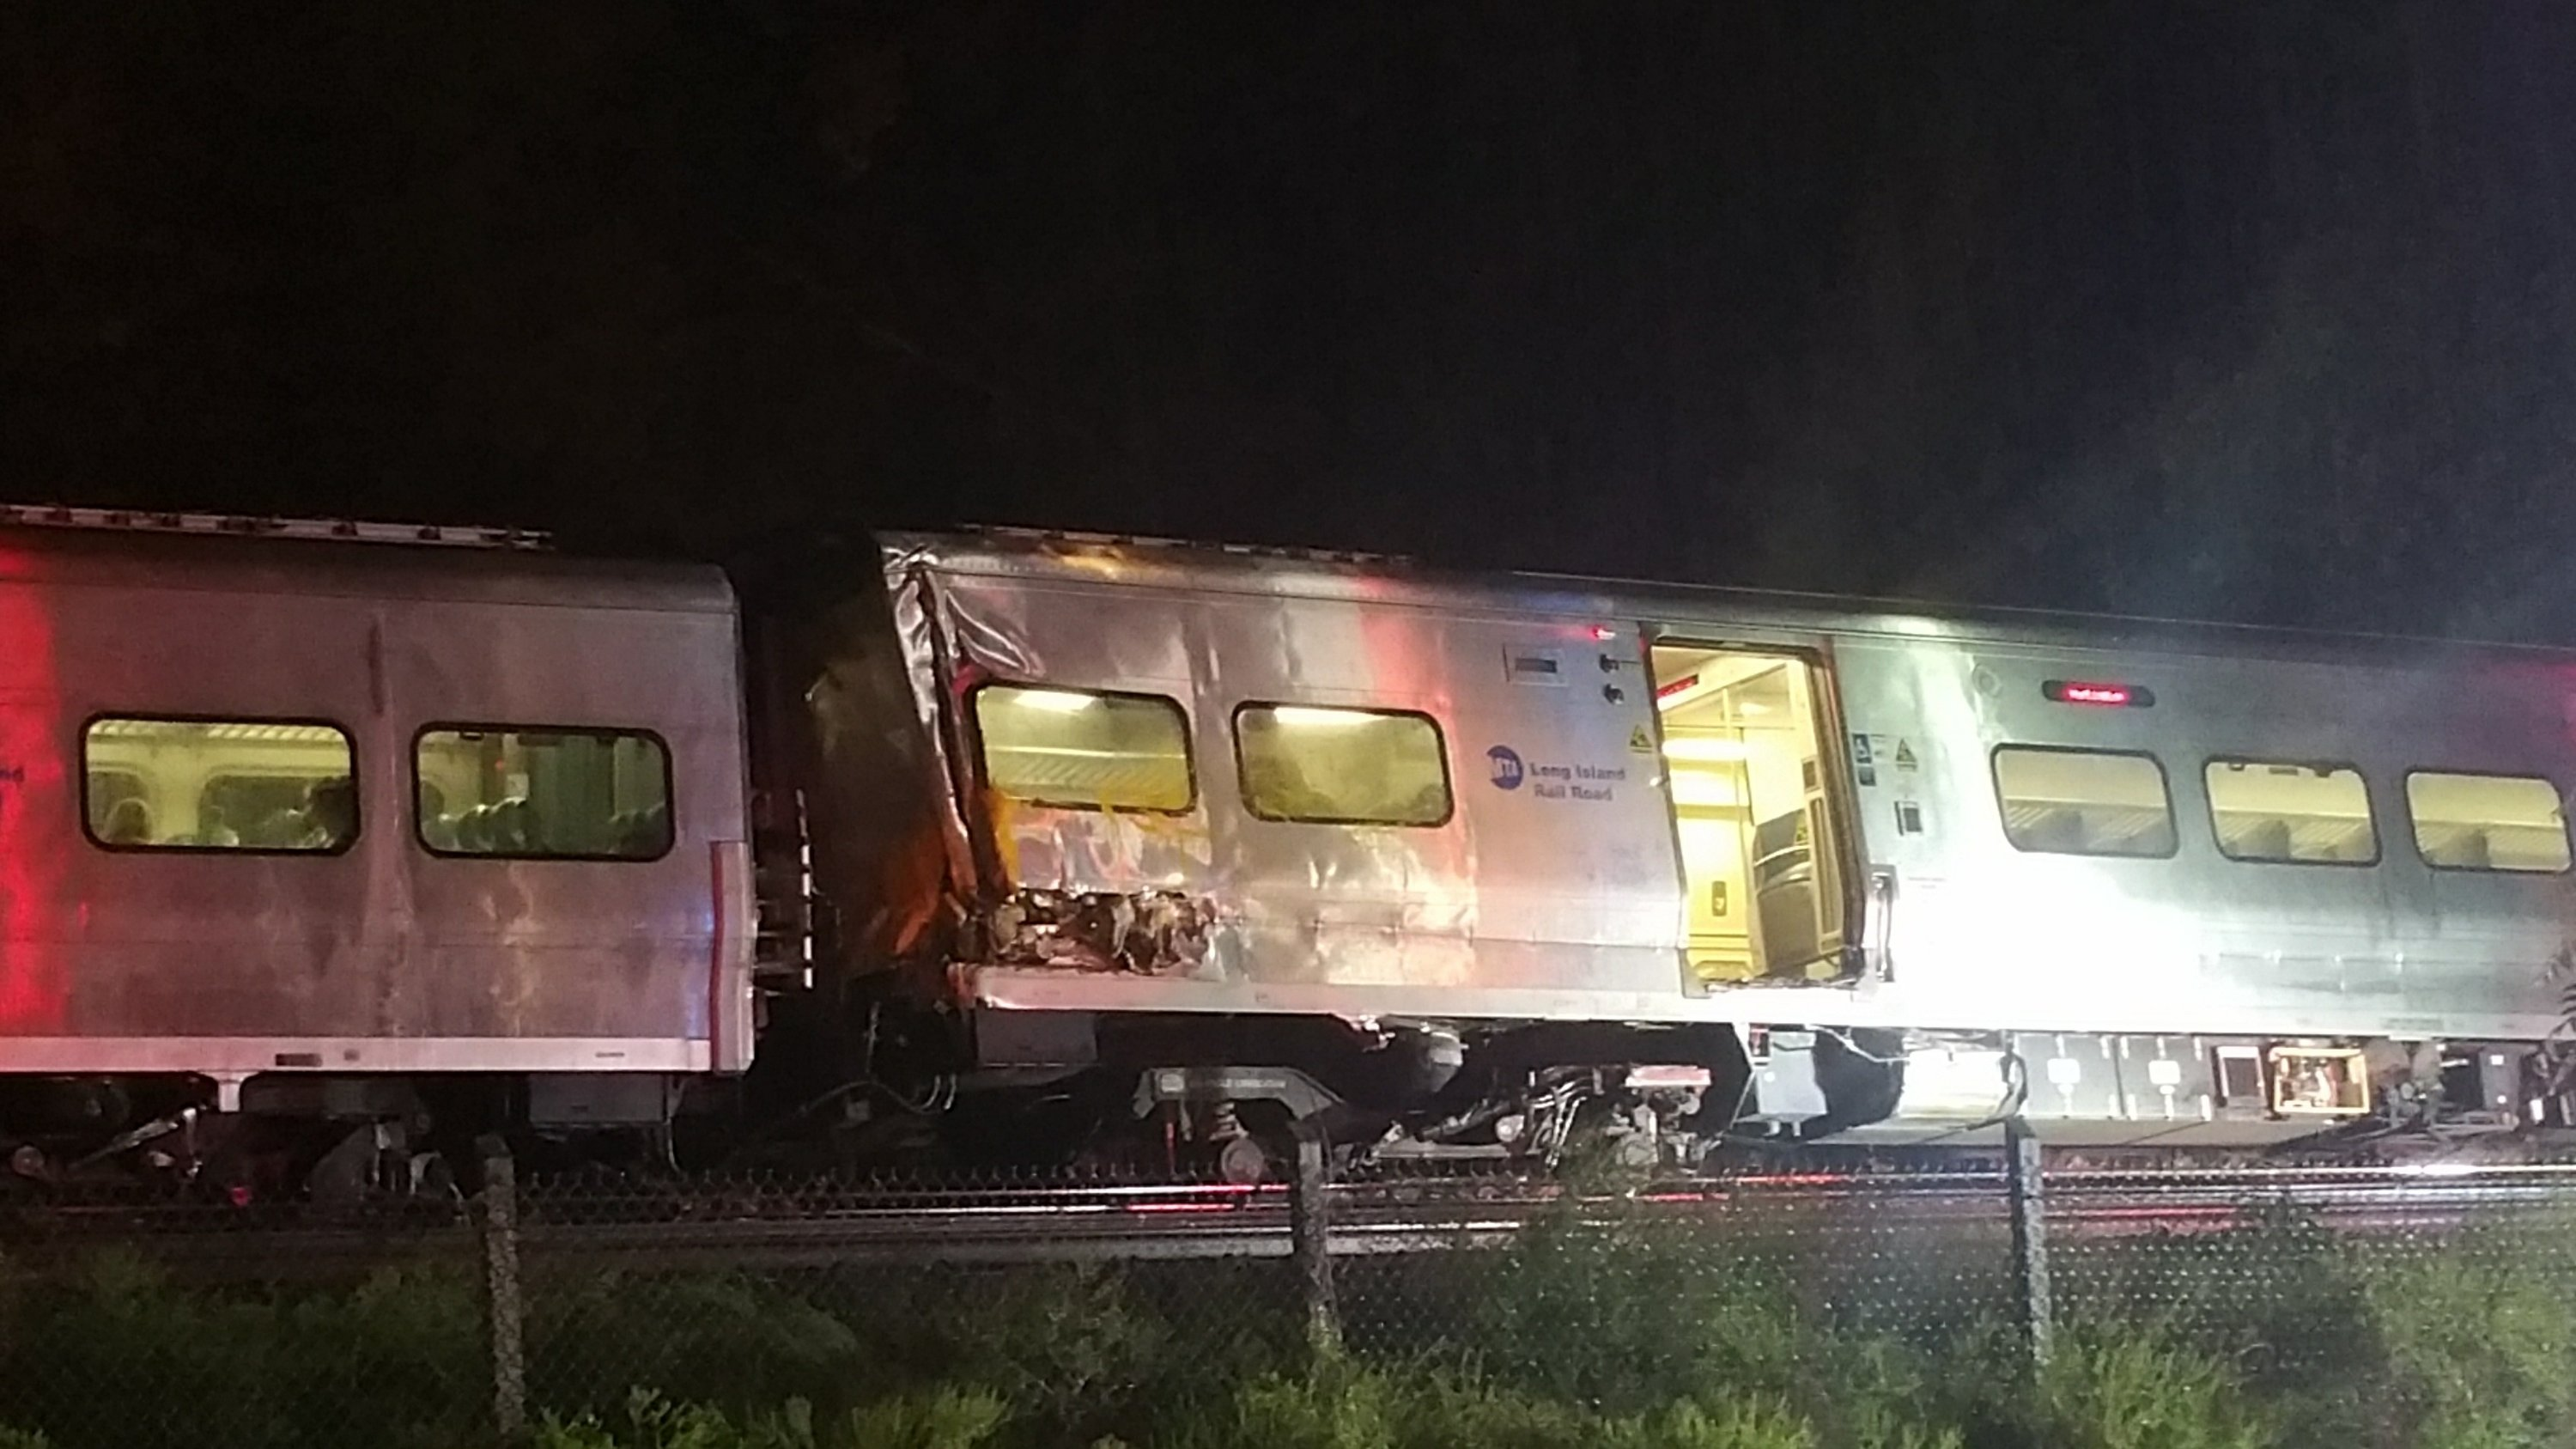 Governor: Trains side-swiped each other, causing derailment